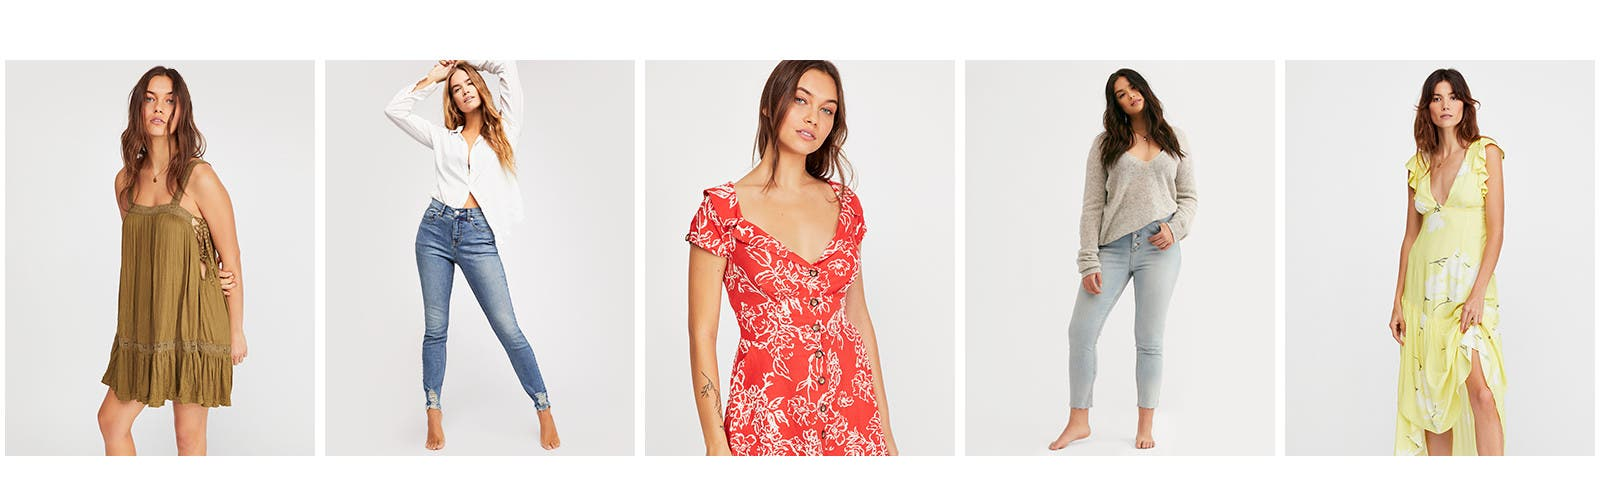 Spring fever: new Free People arrivals in full bloom.